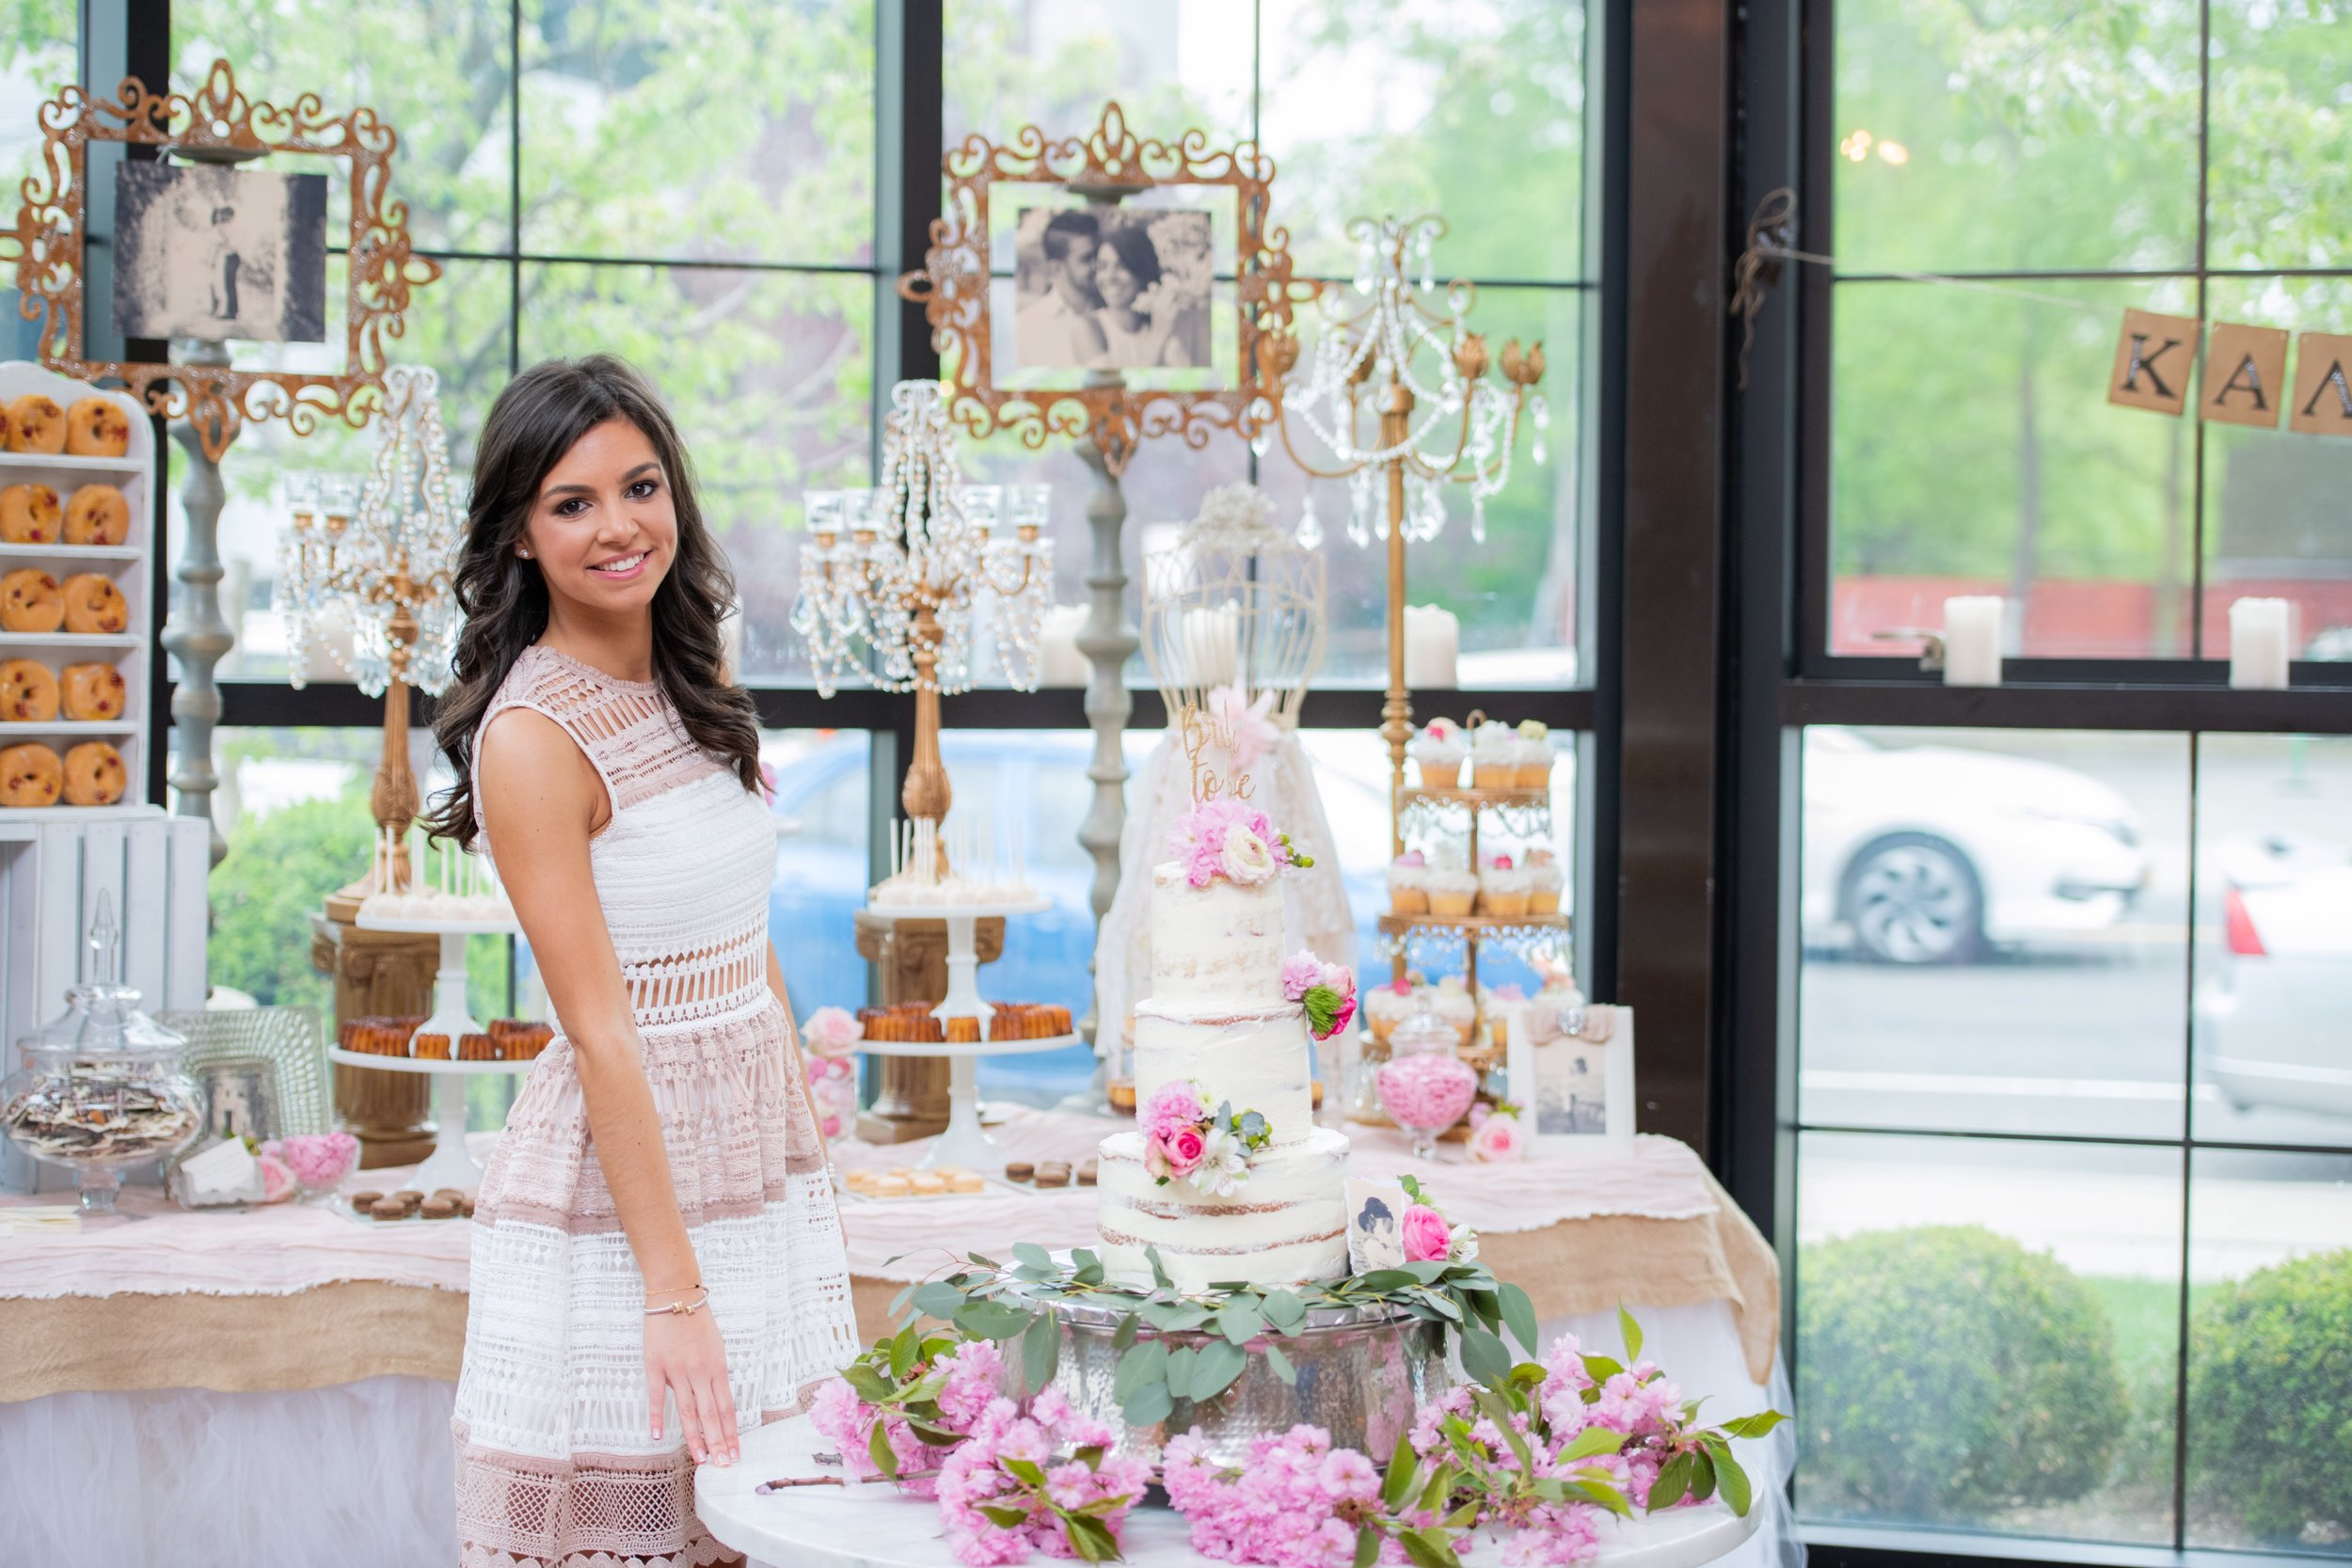 beautiful-and-blessed-events-limani-roslyn-new-york-bridal-shower-theodora-008